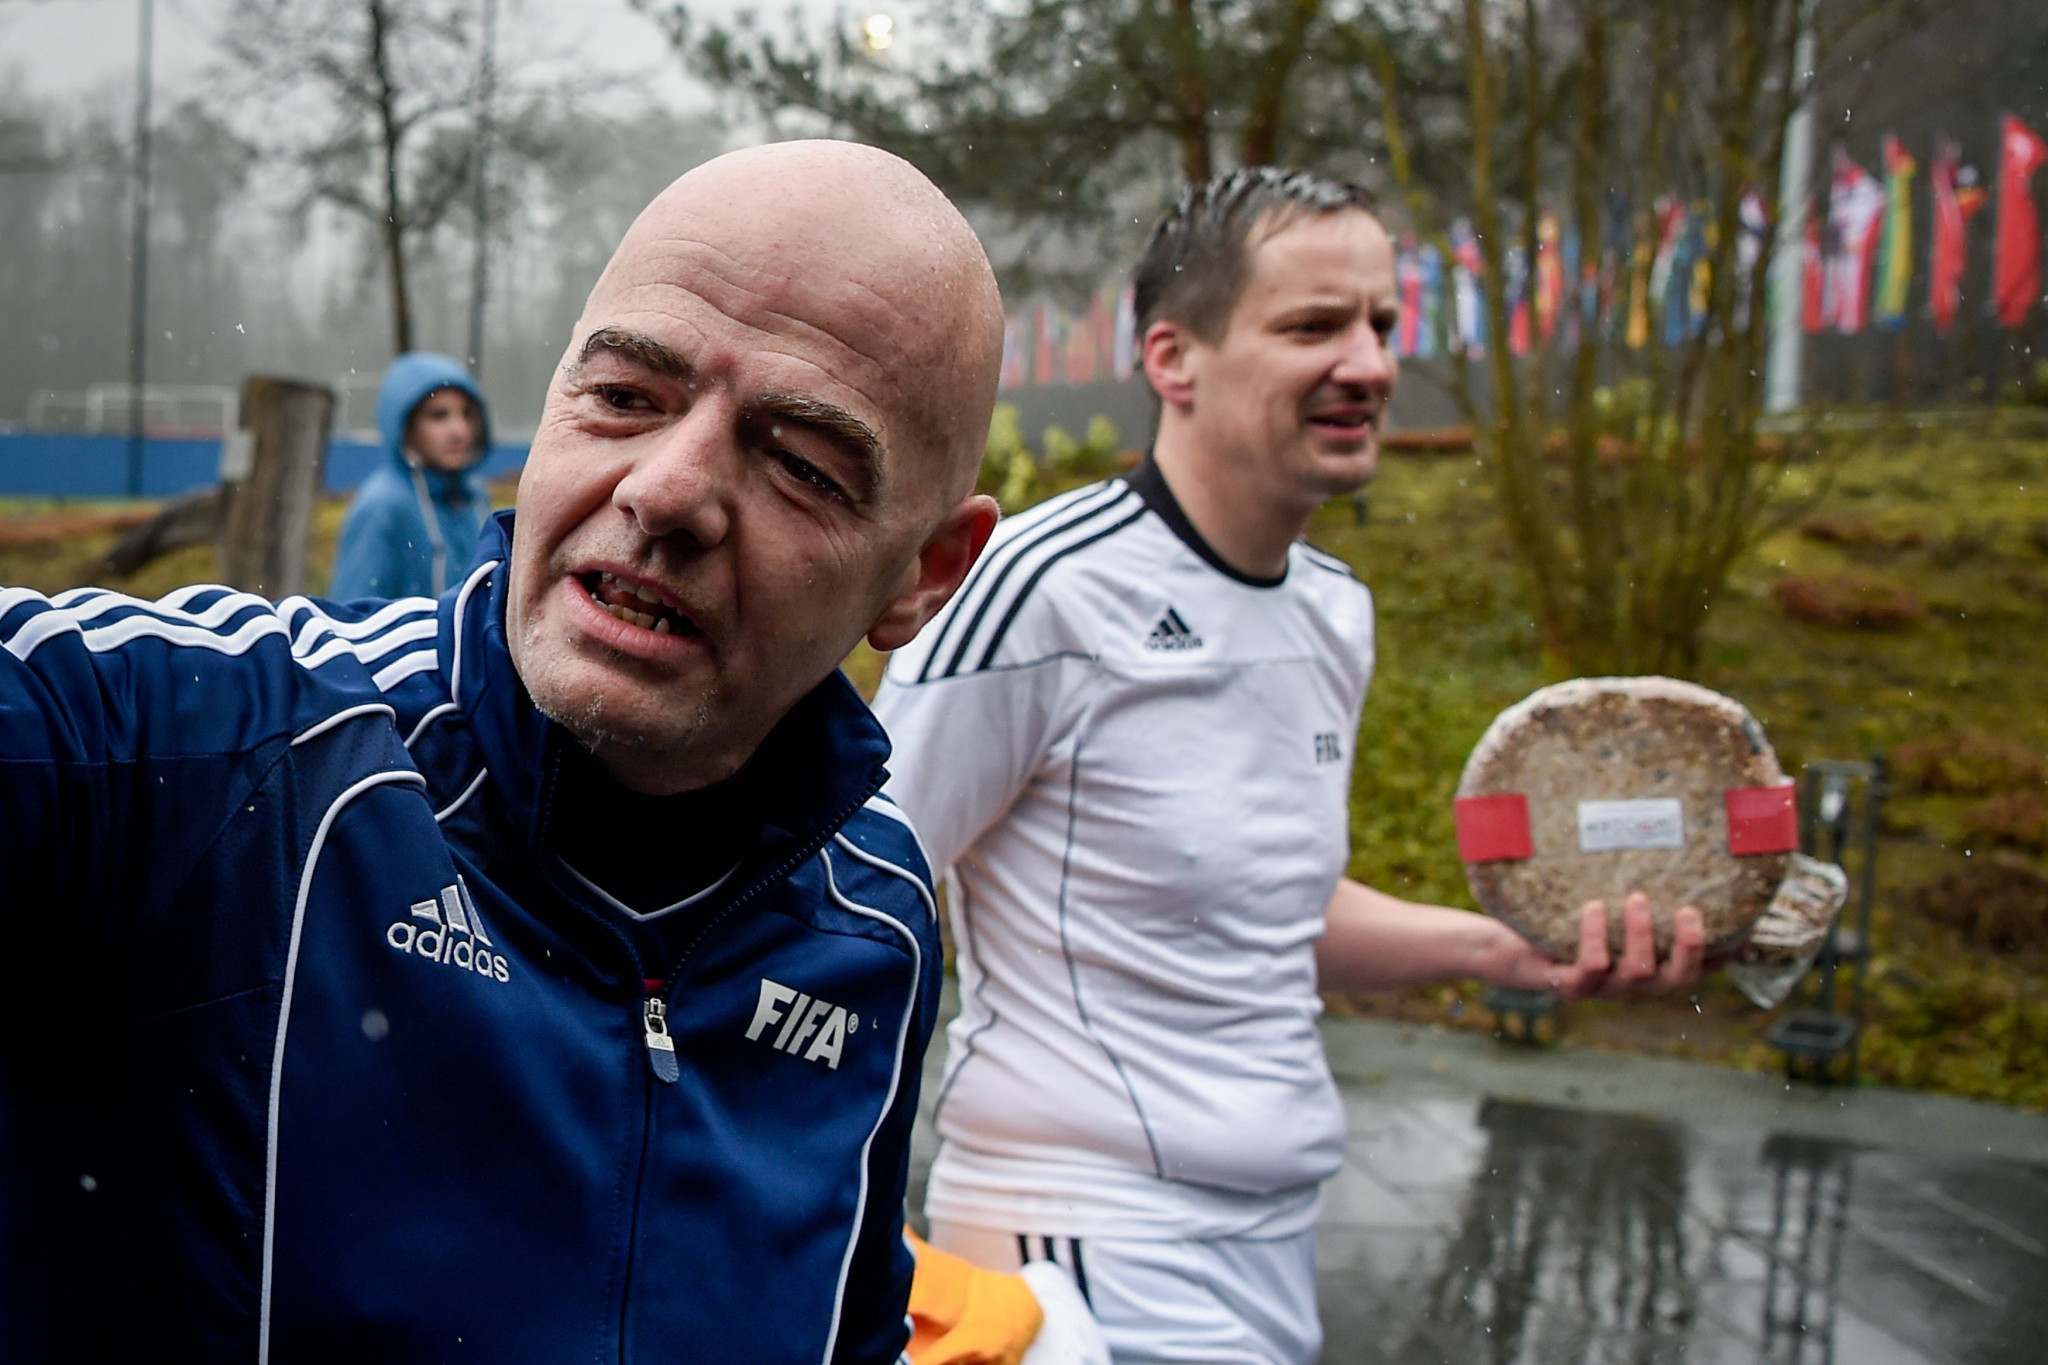 Rinaldo Arnold, who led a previous investigation into Gianni Infantino, is reportedly a life-long friend of the FIFA boss. This picture dates back to 2016 ©Getty Images